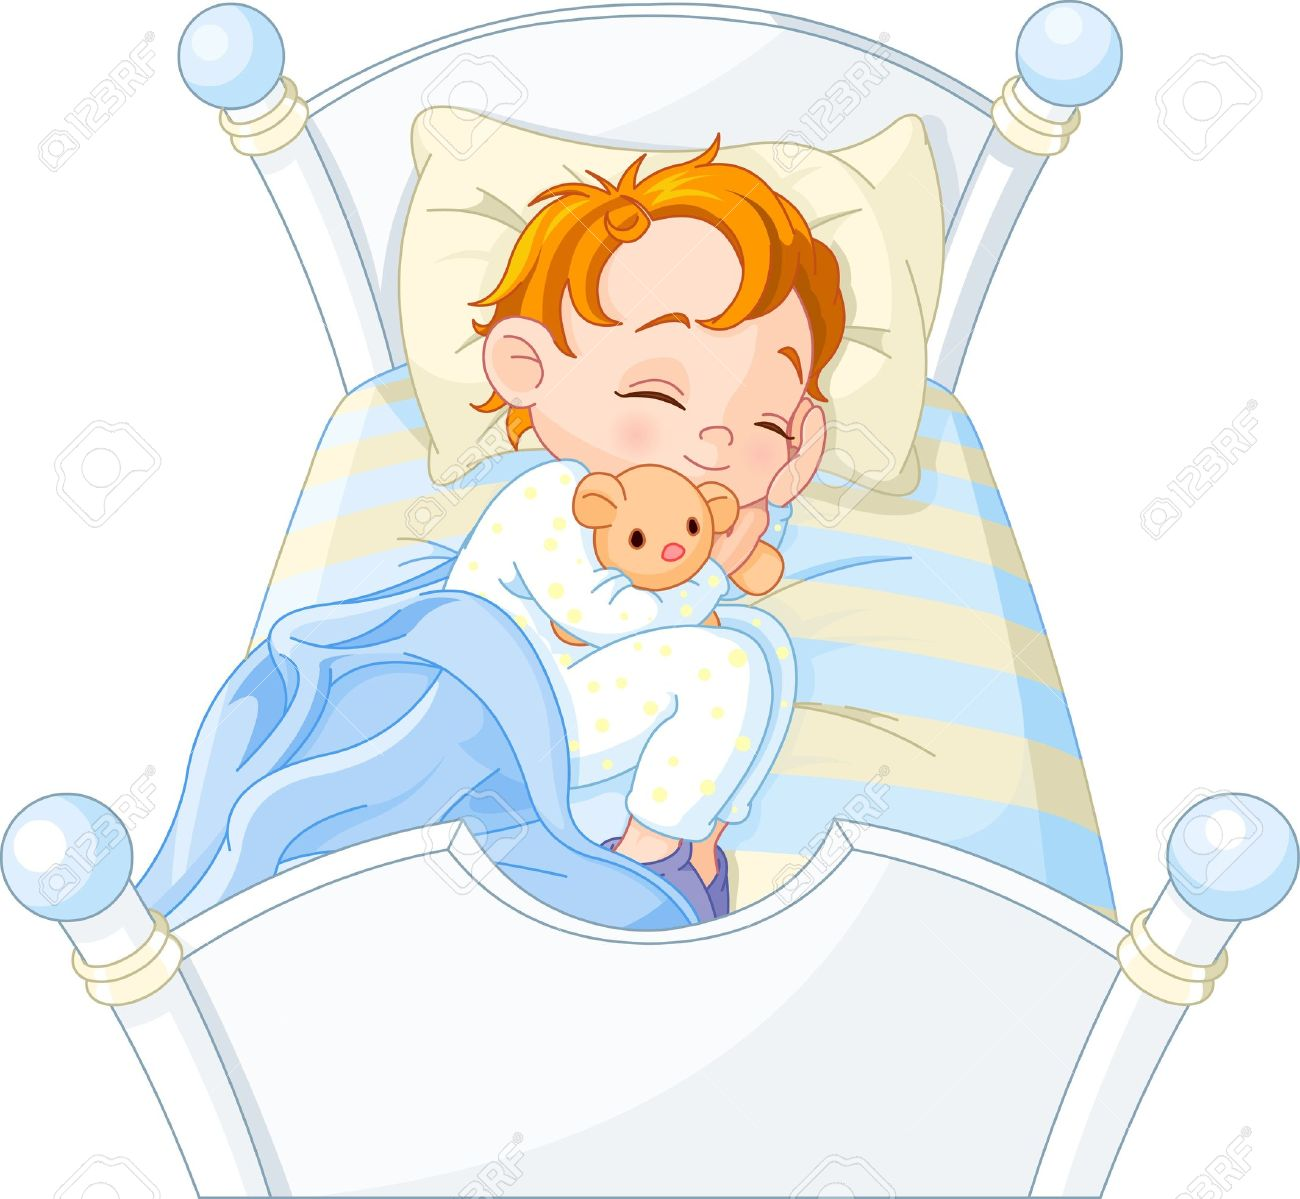 Cute small bed cartoon clipart. Clipartfest little boy sleeping